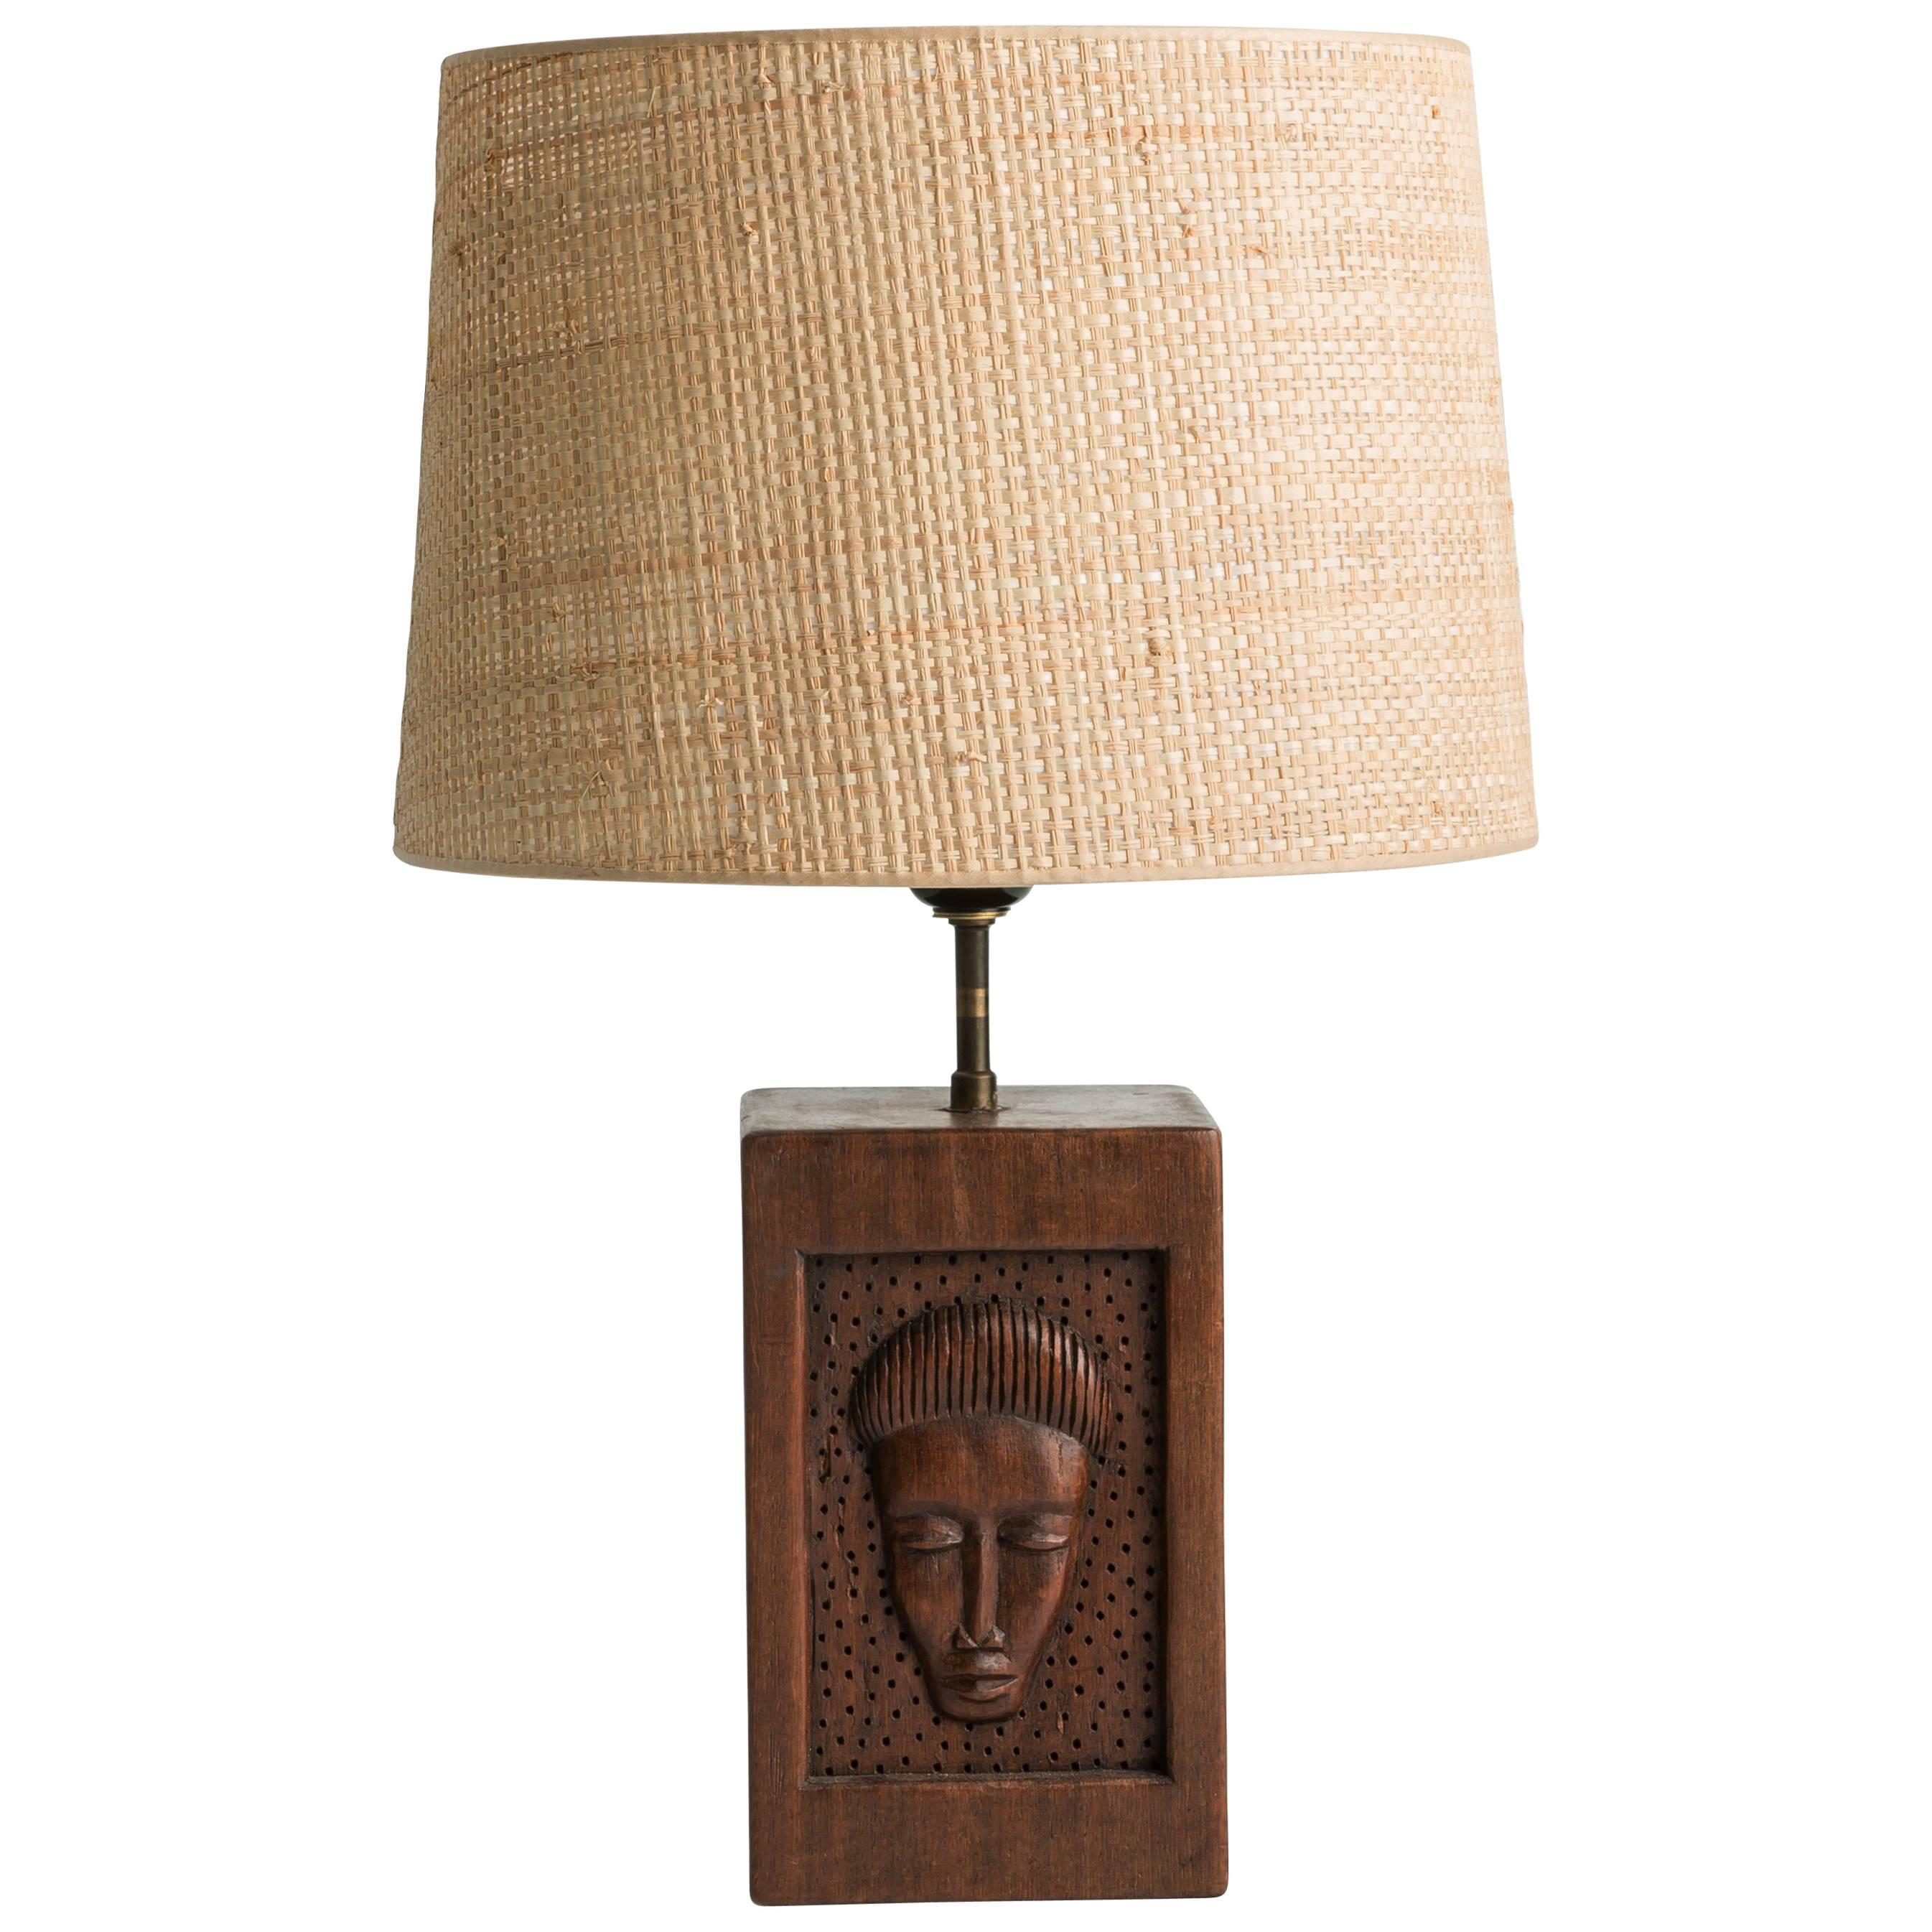 Primitive Hand Carved Table Lamp For Sale